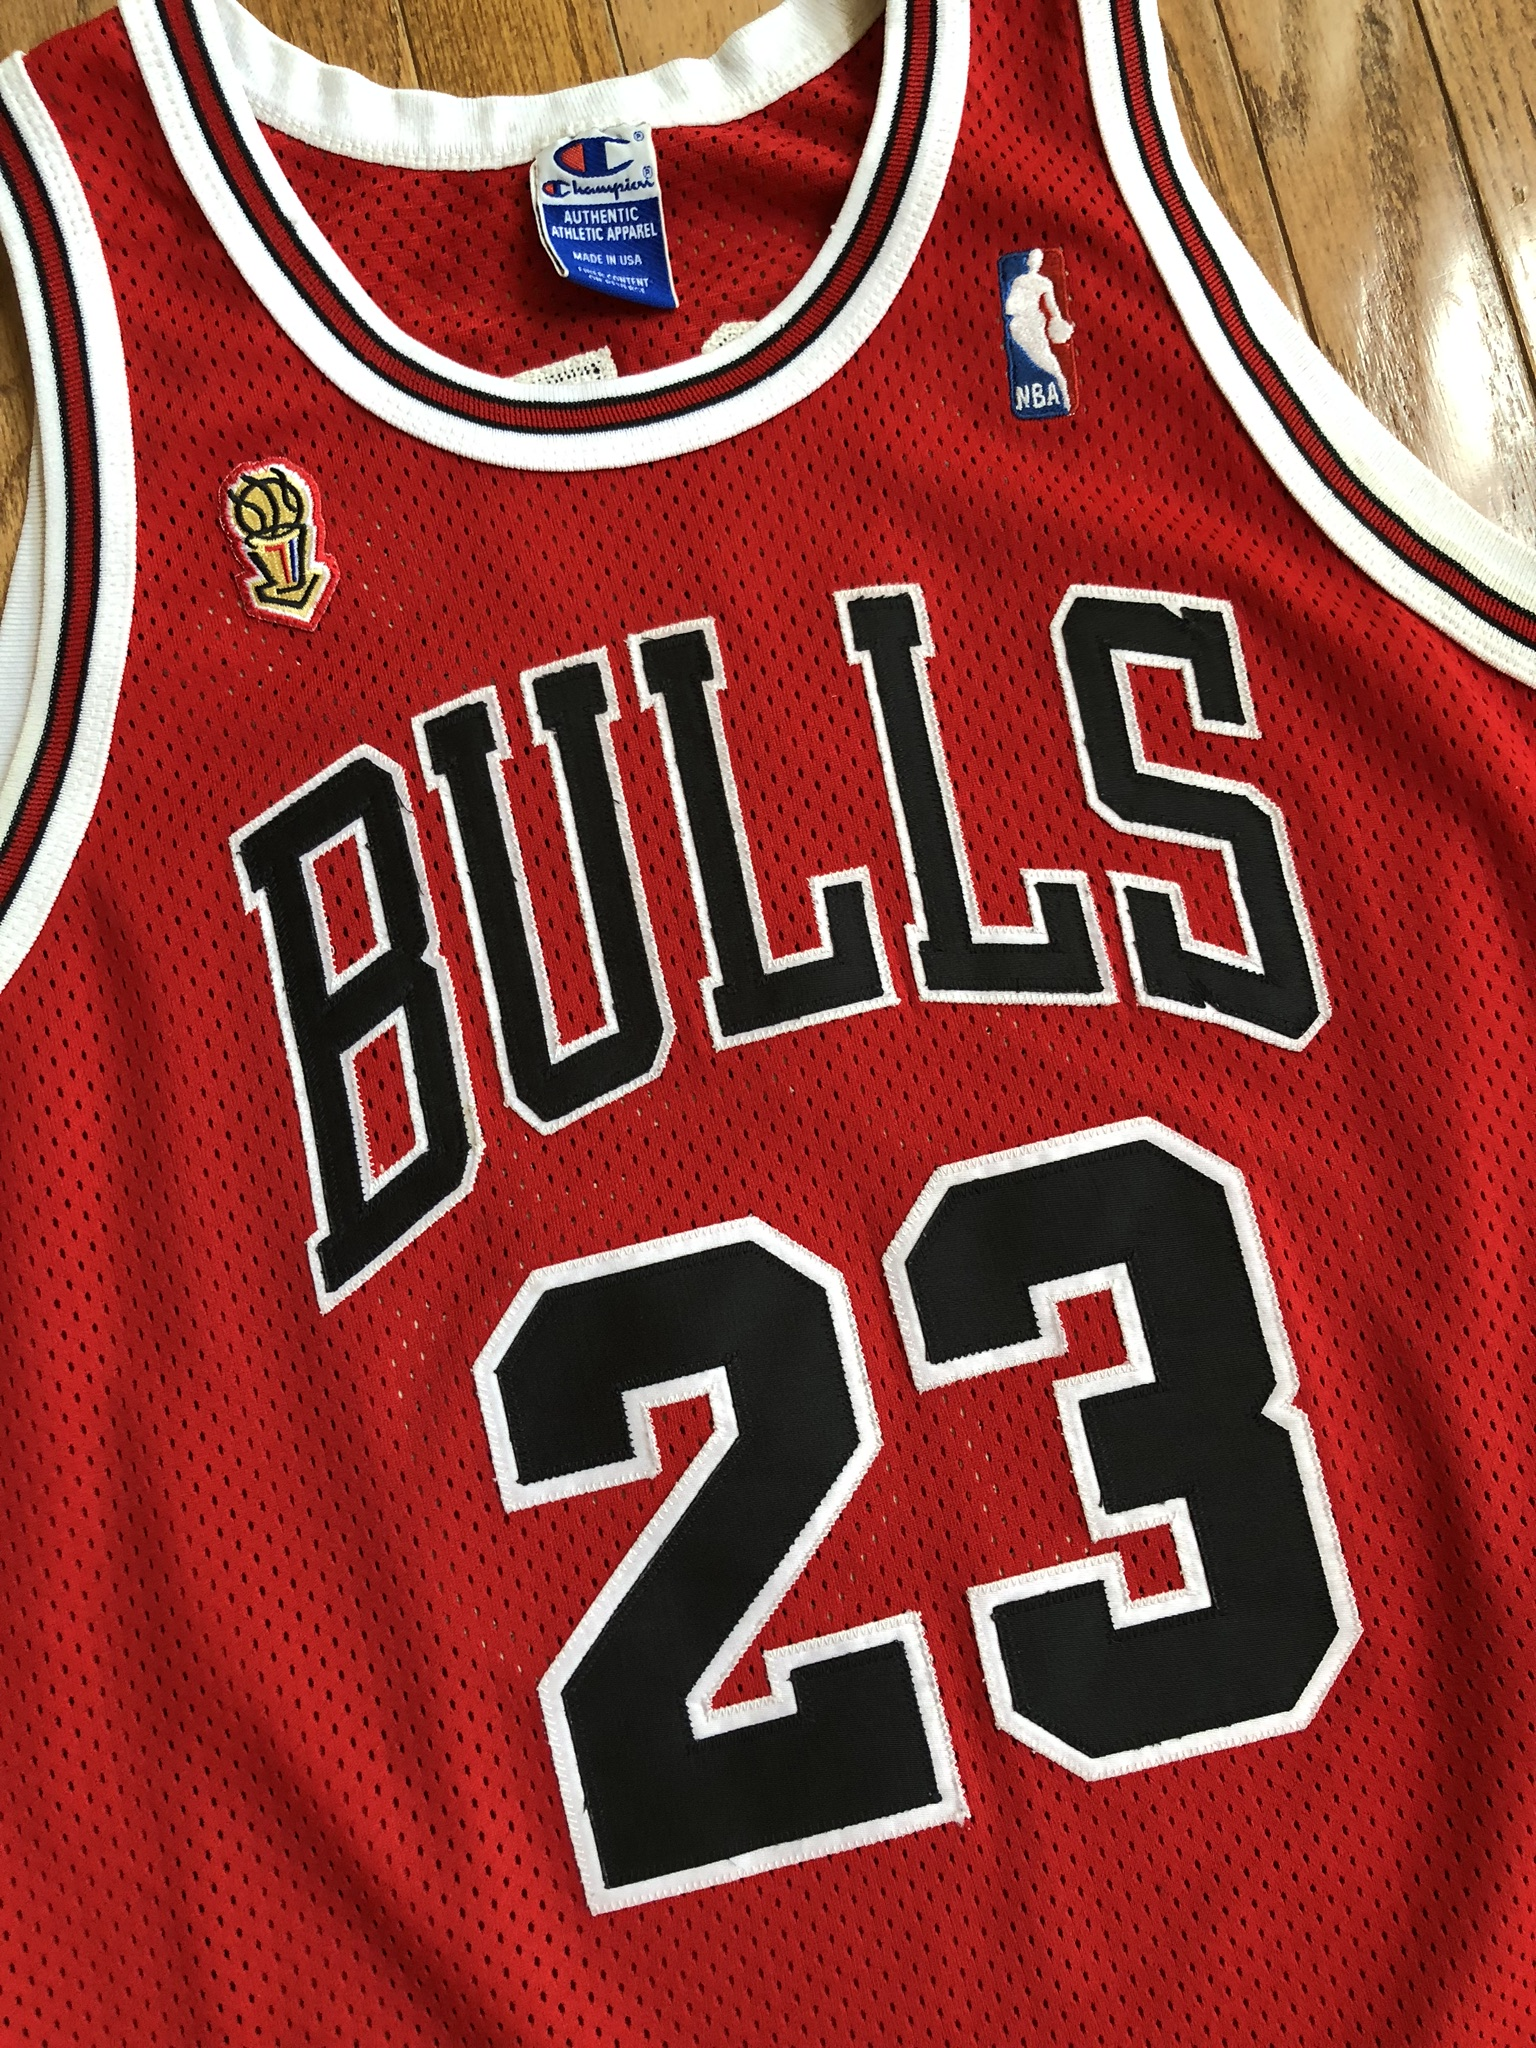 1996 Michael Jordan Chicago Bulls Authentic NBA Finals Champ